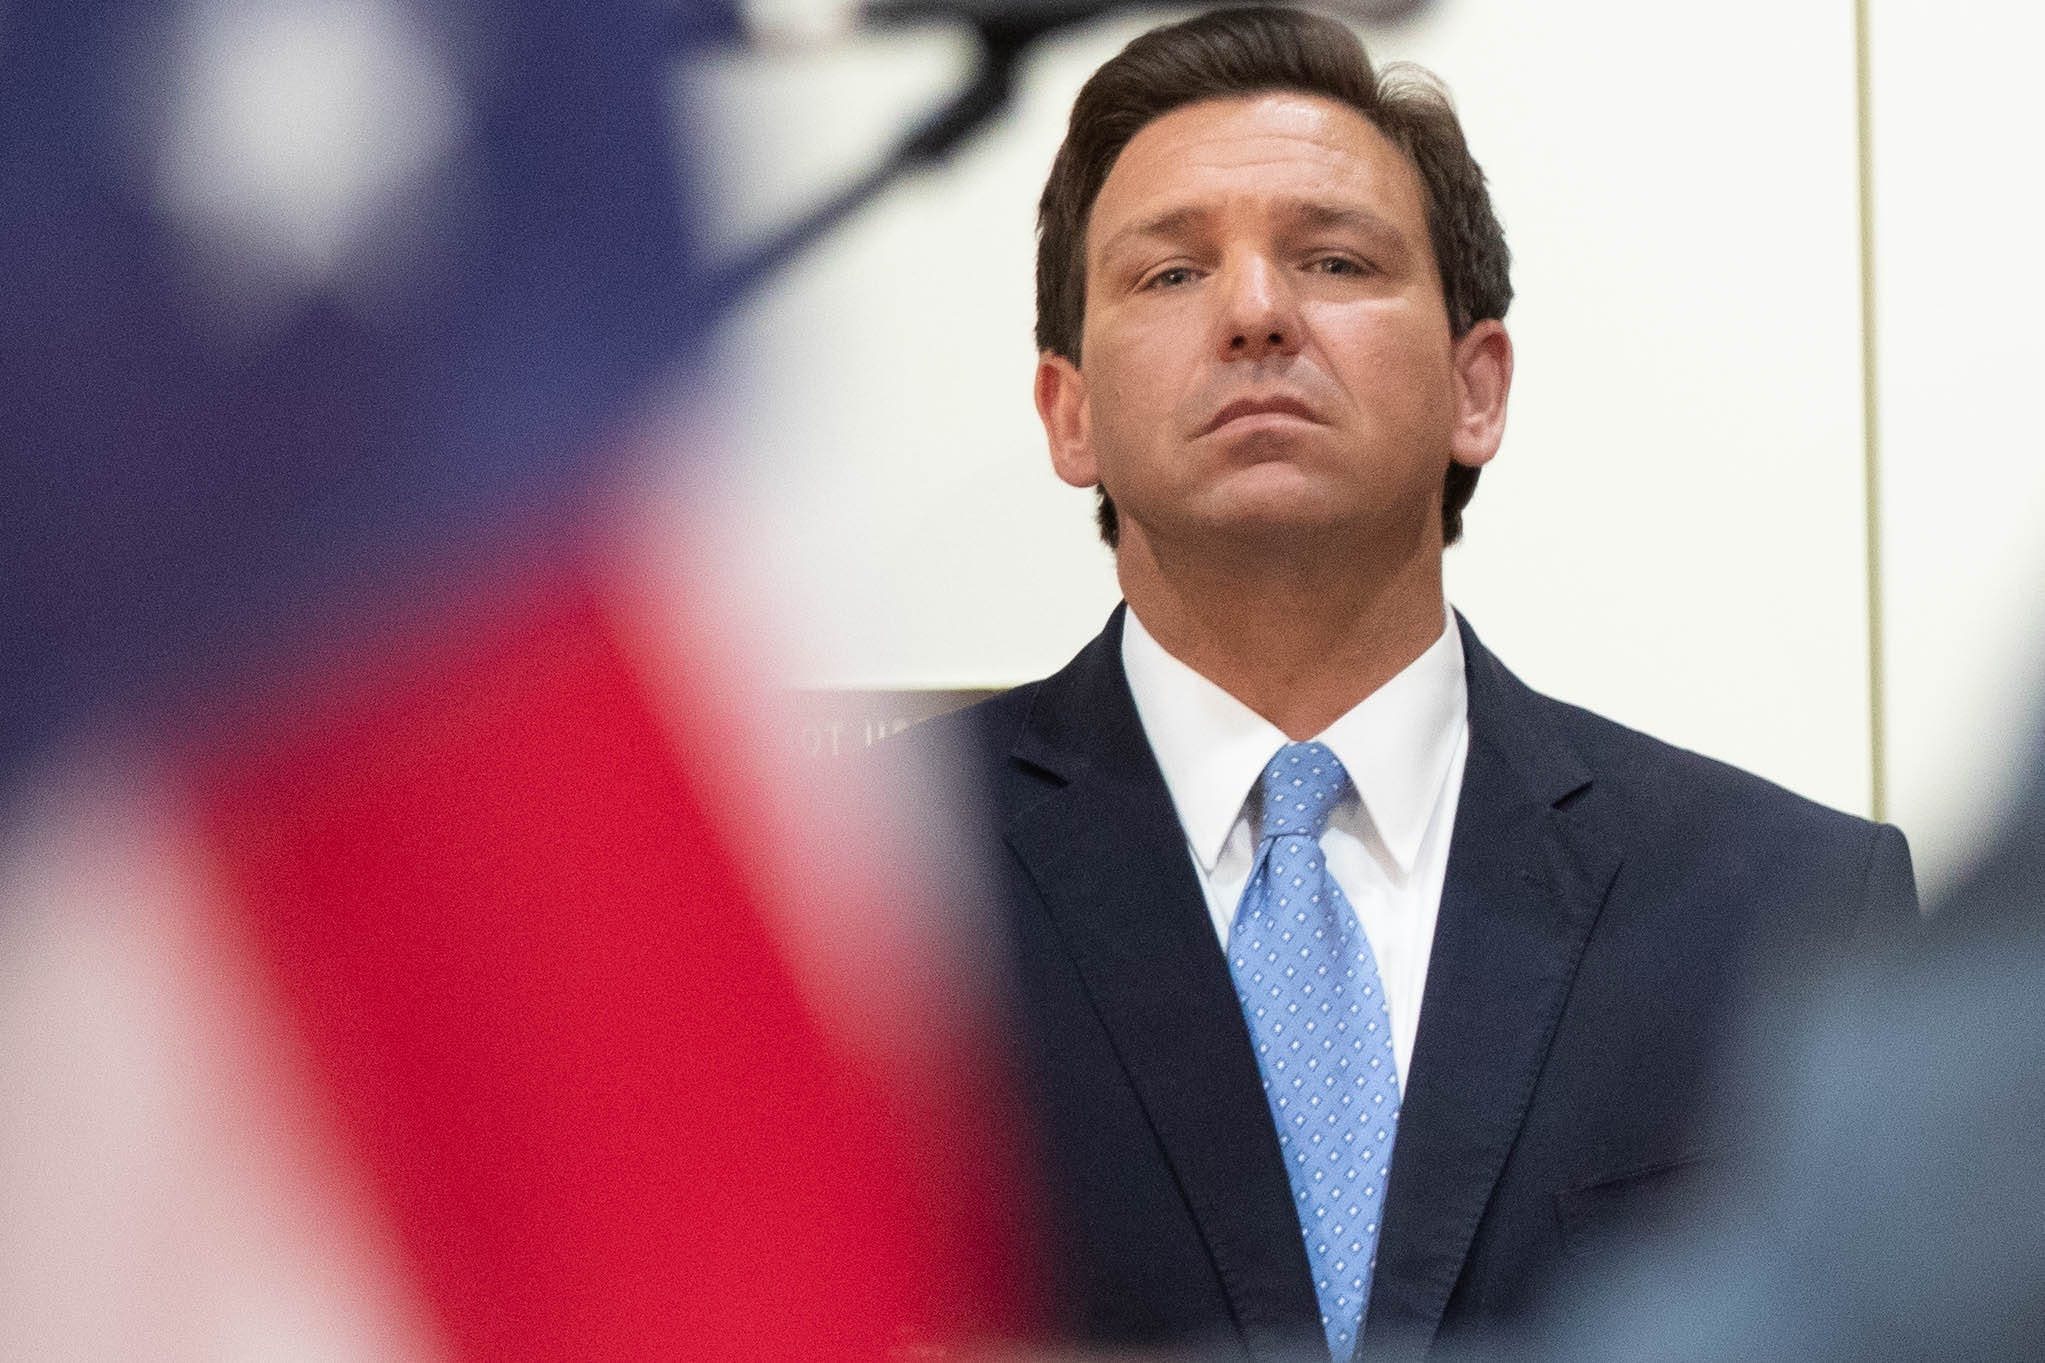 Before controversial policy push, Gov. Ron DeSantis first reshaped Florida's highest court 3